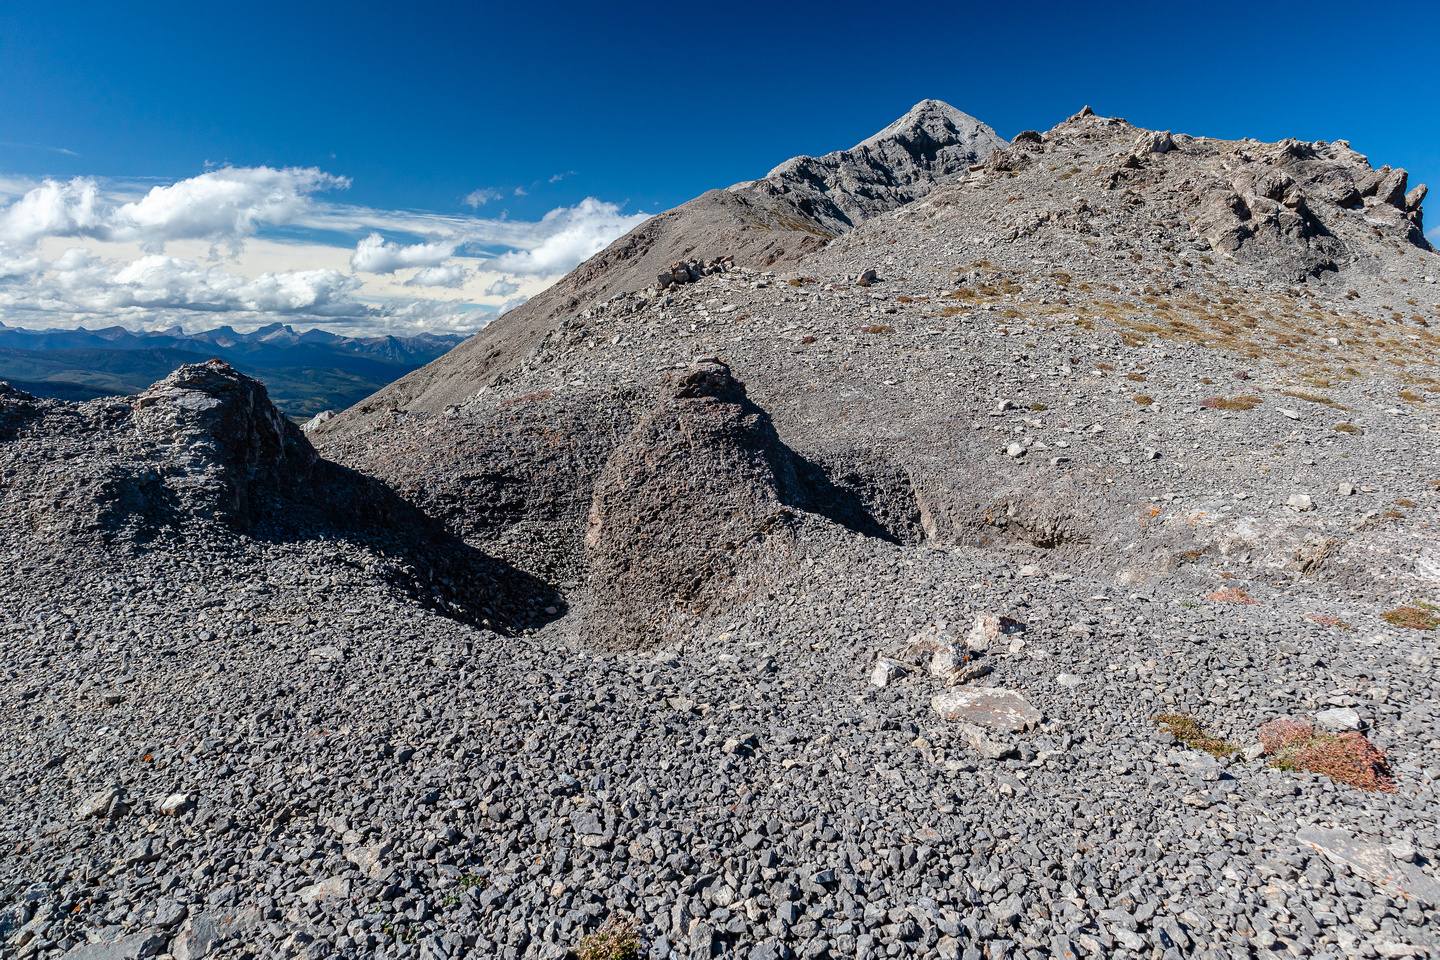 Interesting terrain as I walk to the south ridge of Sentry Mountain.